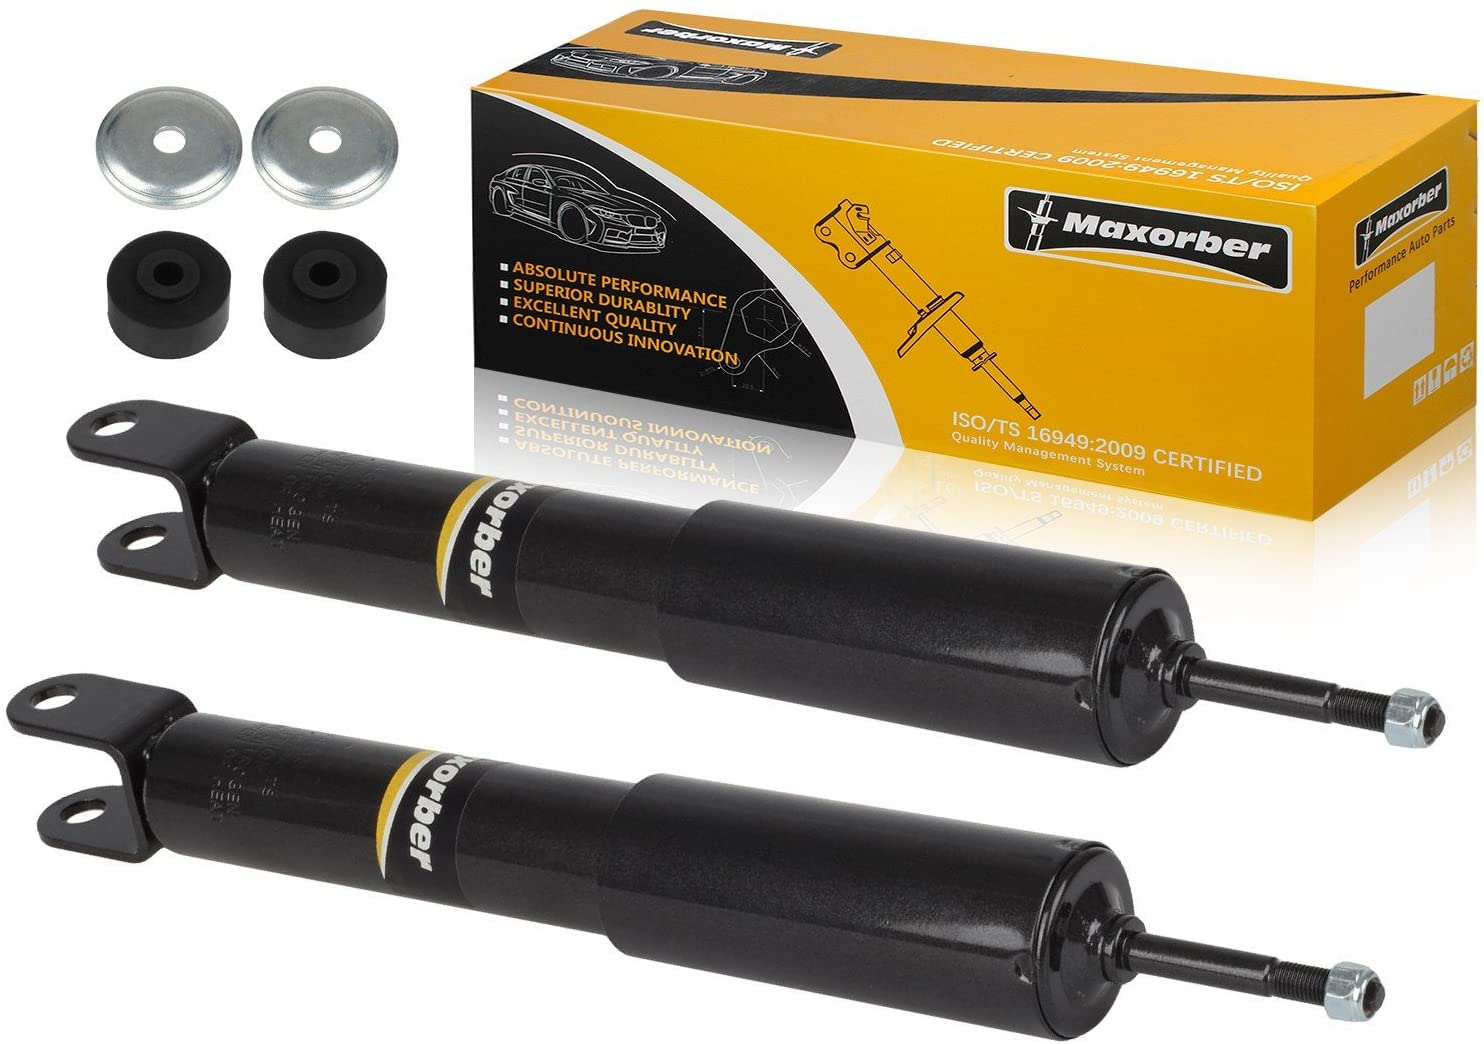 Maxorber Front Set Shock Absorber Strut Compatible with Silverado 1500 4WD 1999-2006 Replacement for Sierra 1500 4WD 1999-2006 Shock Absorber 344381